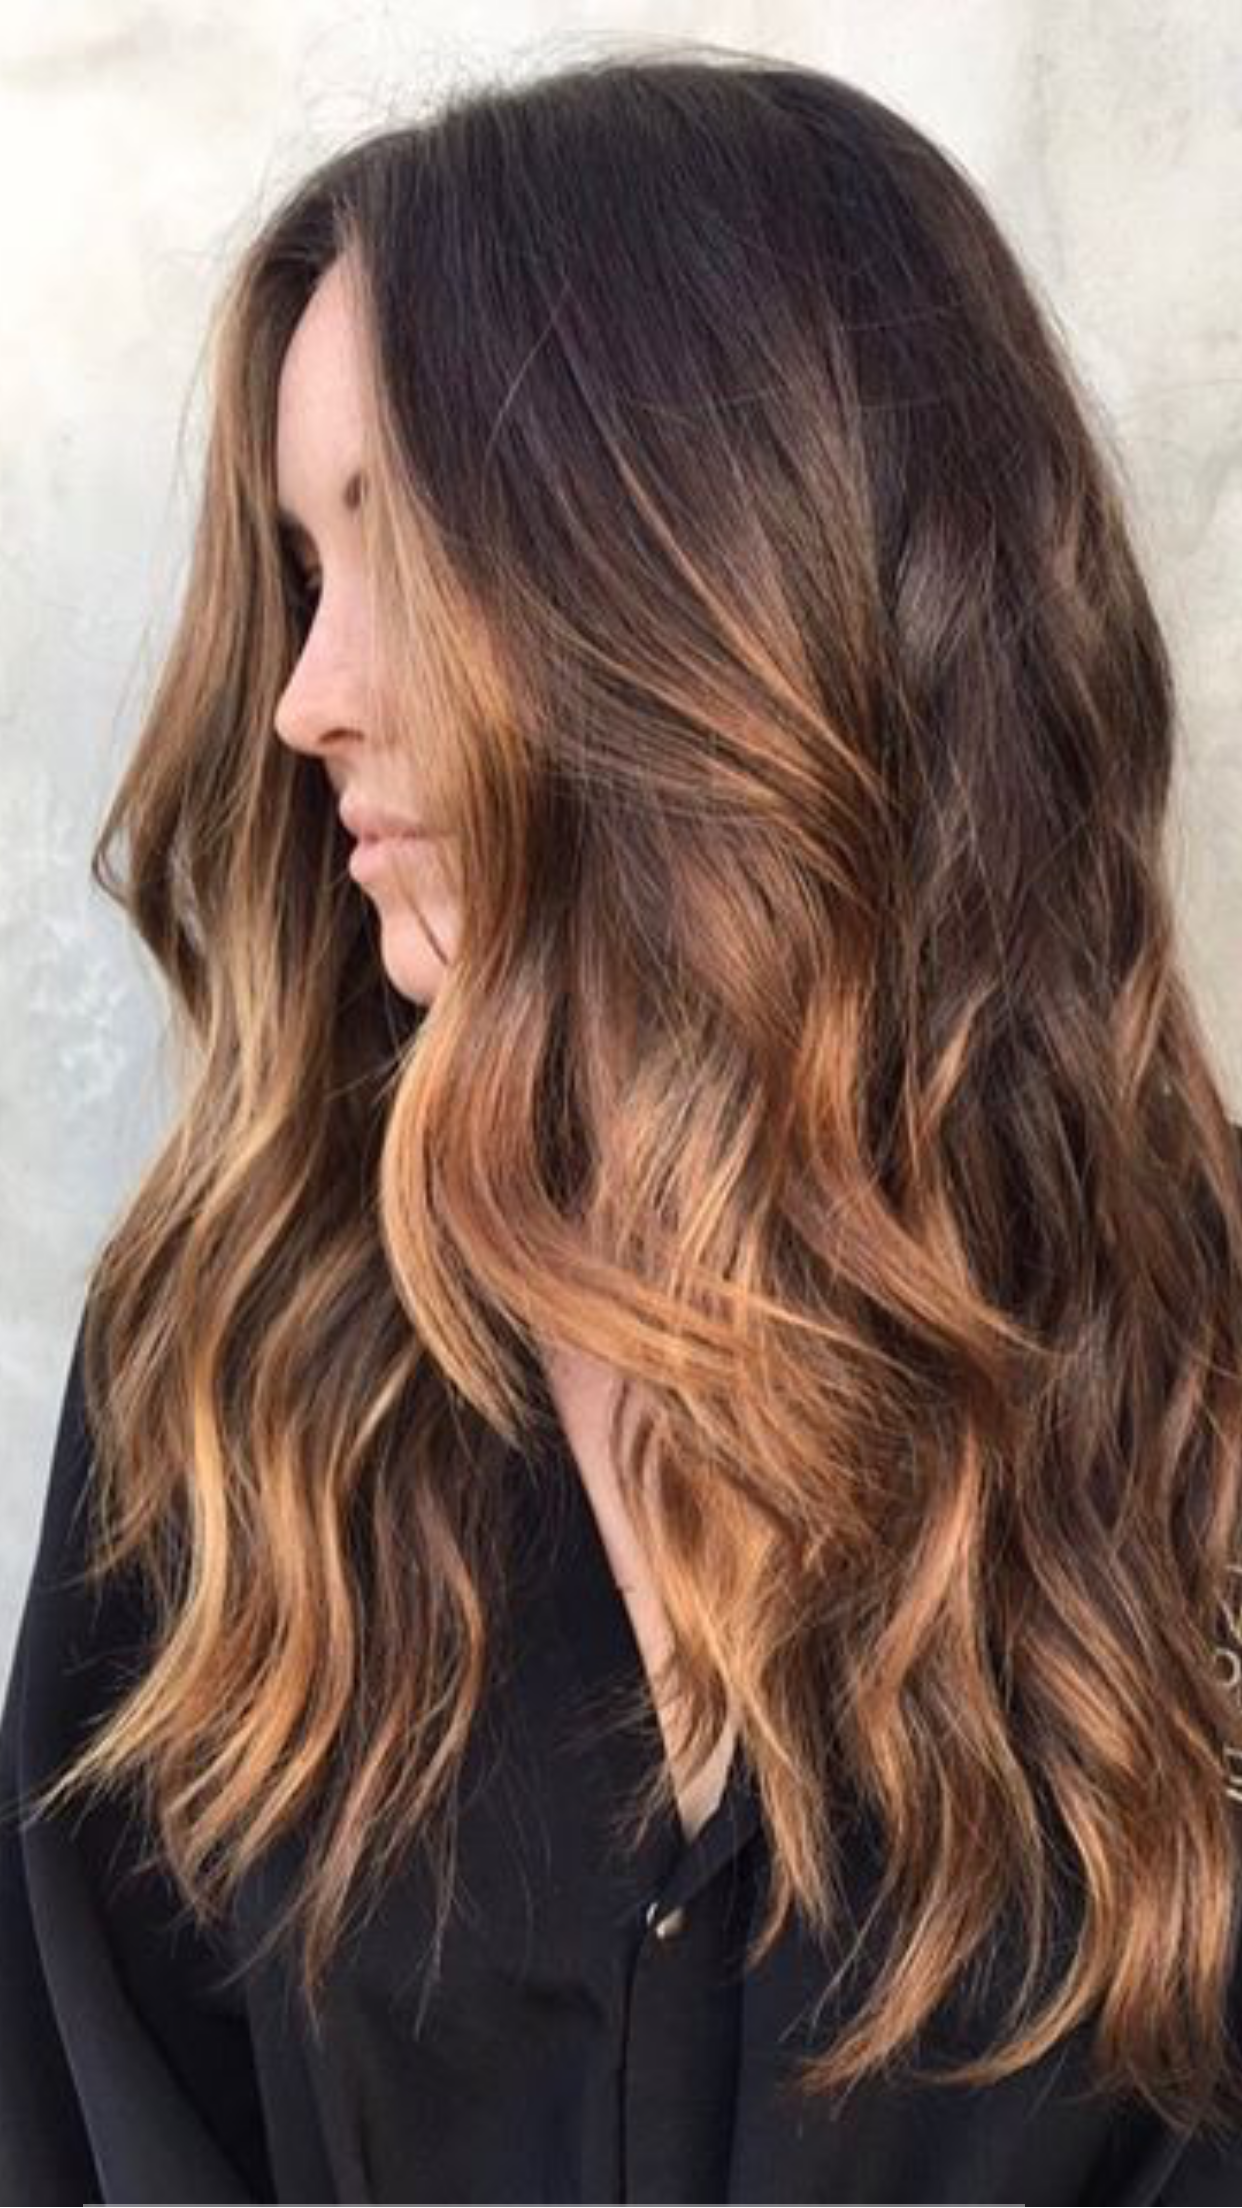 What to ask for warm caramel highlights through a natural or what to ask for warm caramel highlights through a natural or rich brown base pmusecretfo Images